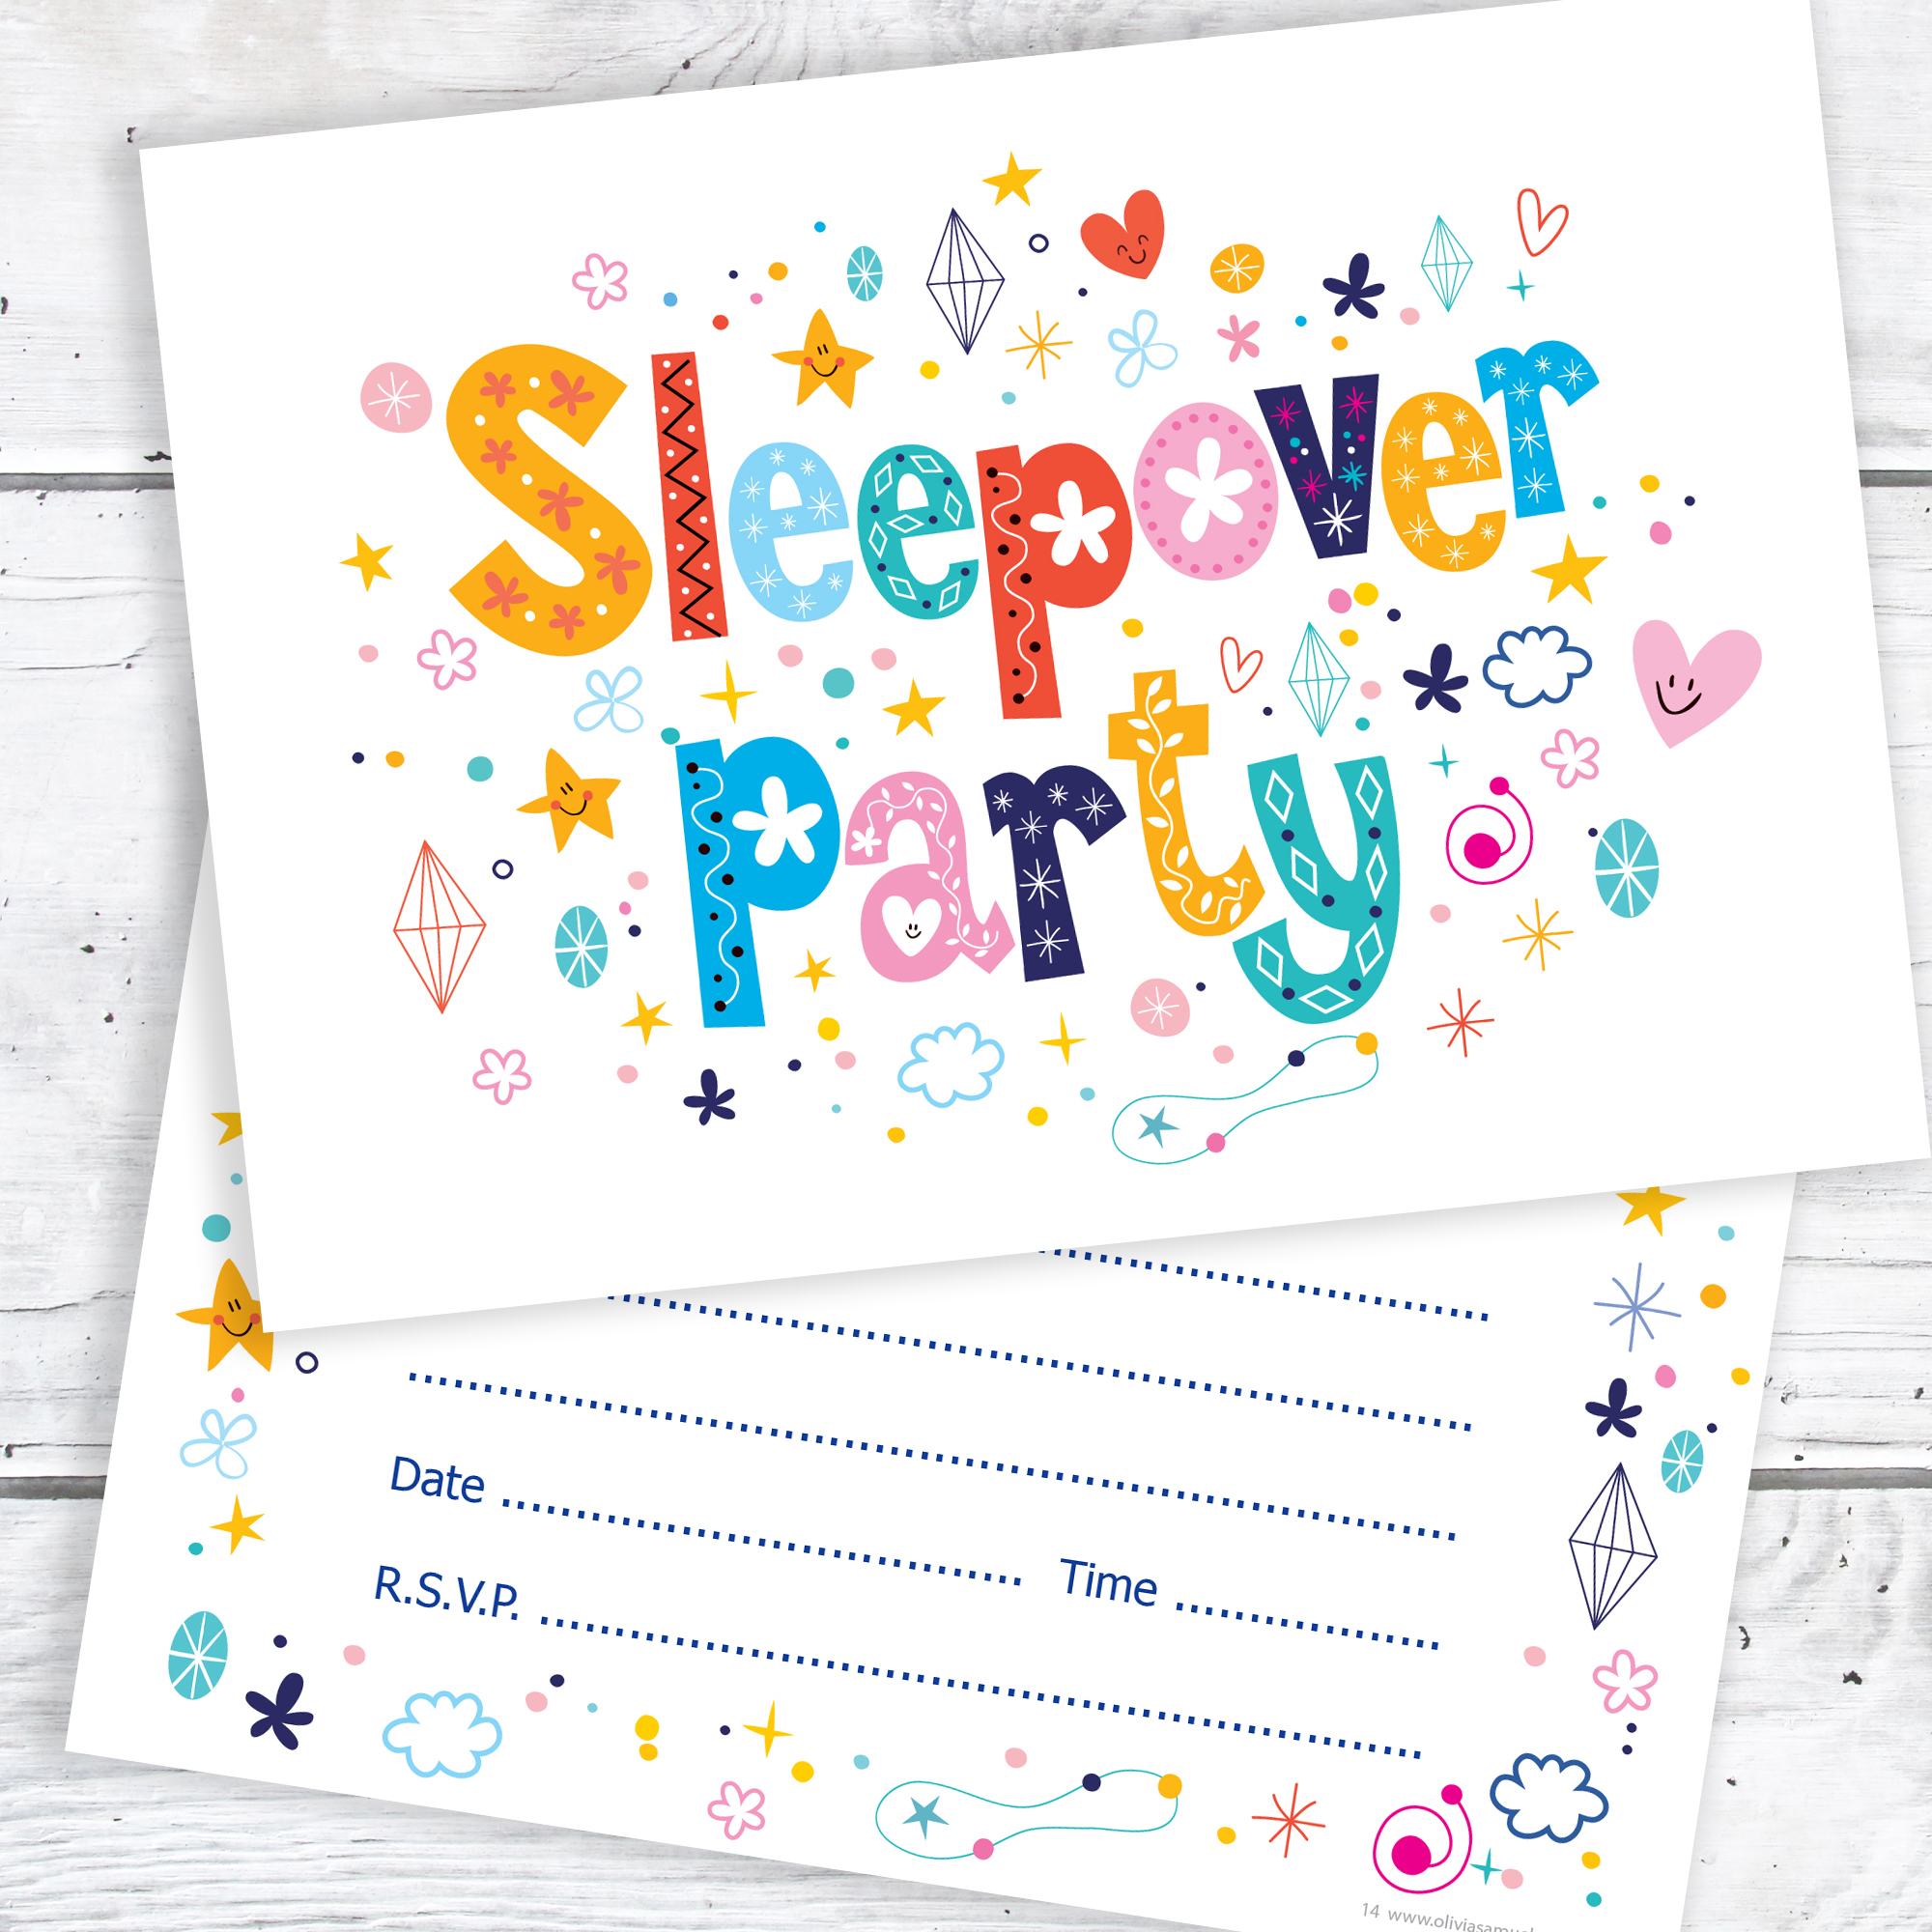 Sleepover Party Birthday Invitations Kids Slumber A6 Postcard Size With Envelopes Pack Of 10